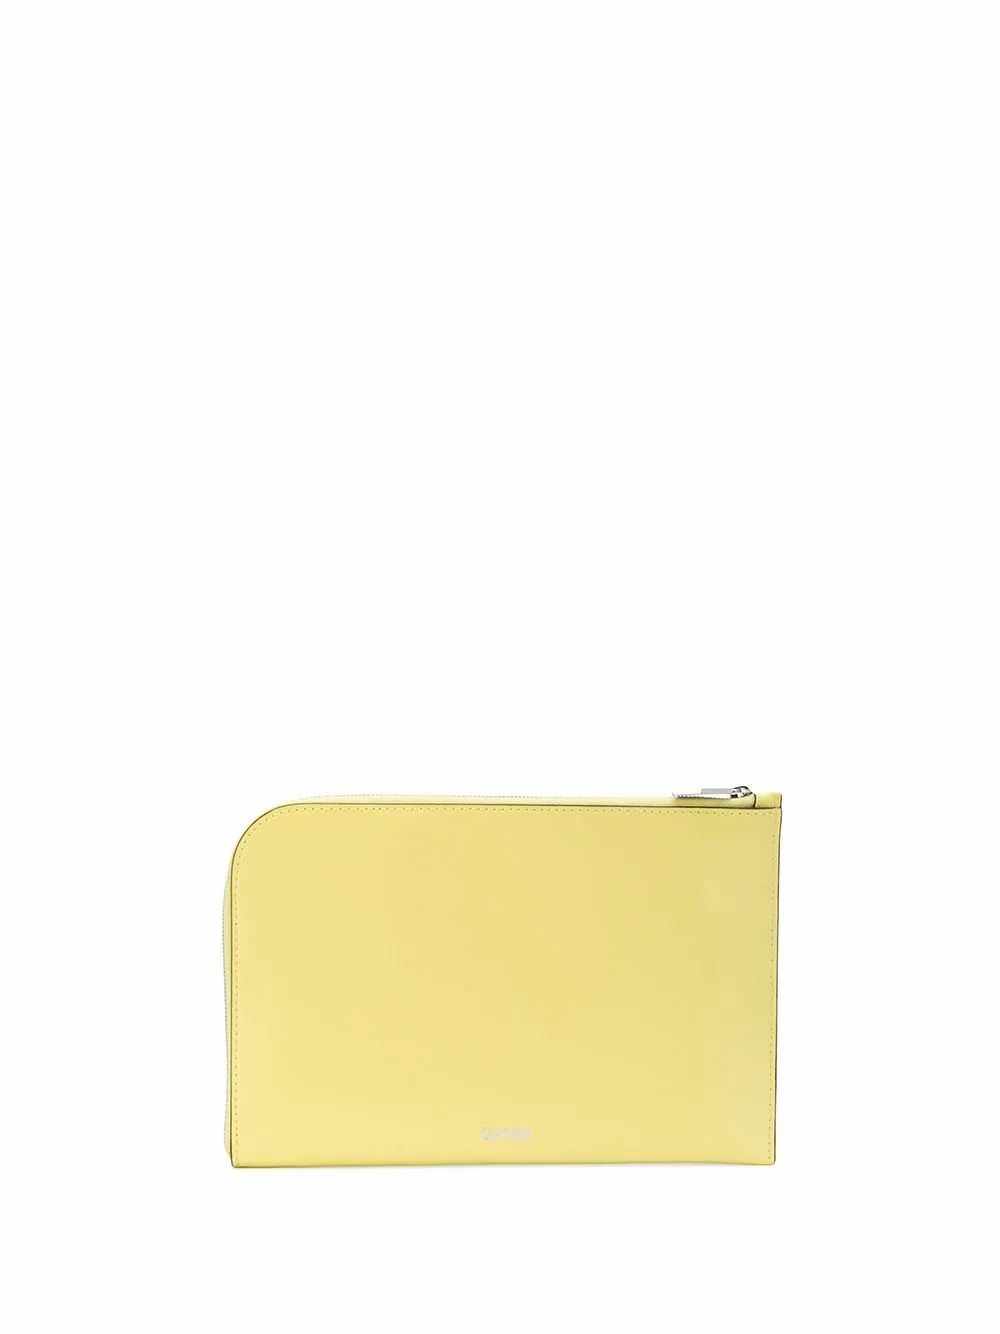 GANNI WOMEN'S A2167336 YELLOW LEATHER POUCH